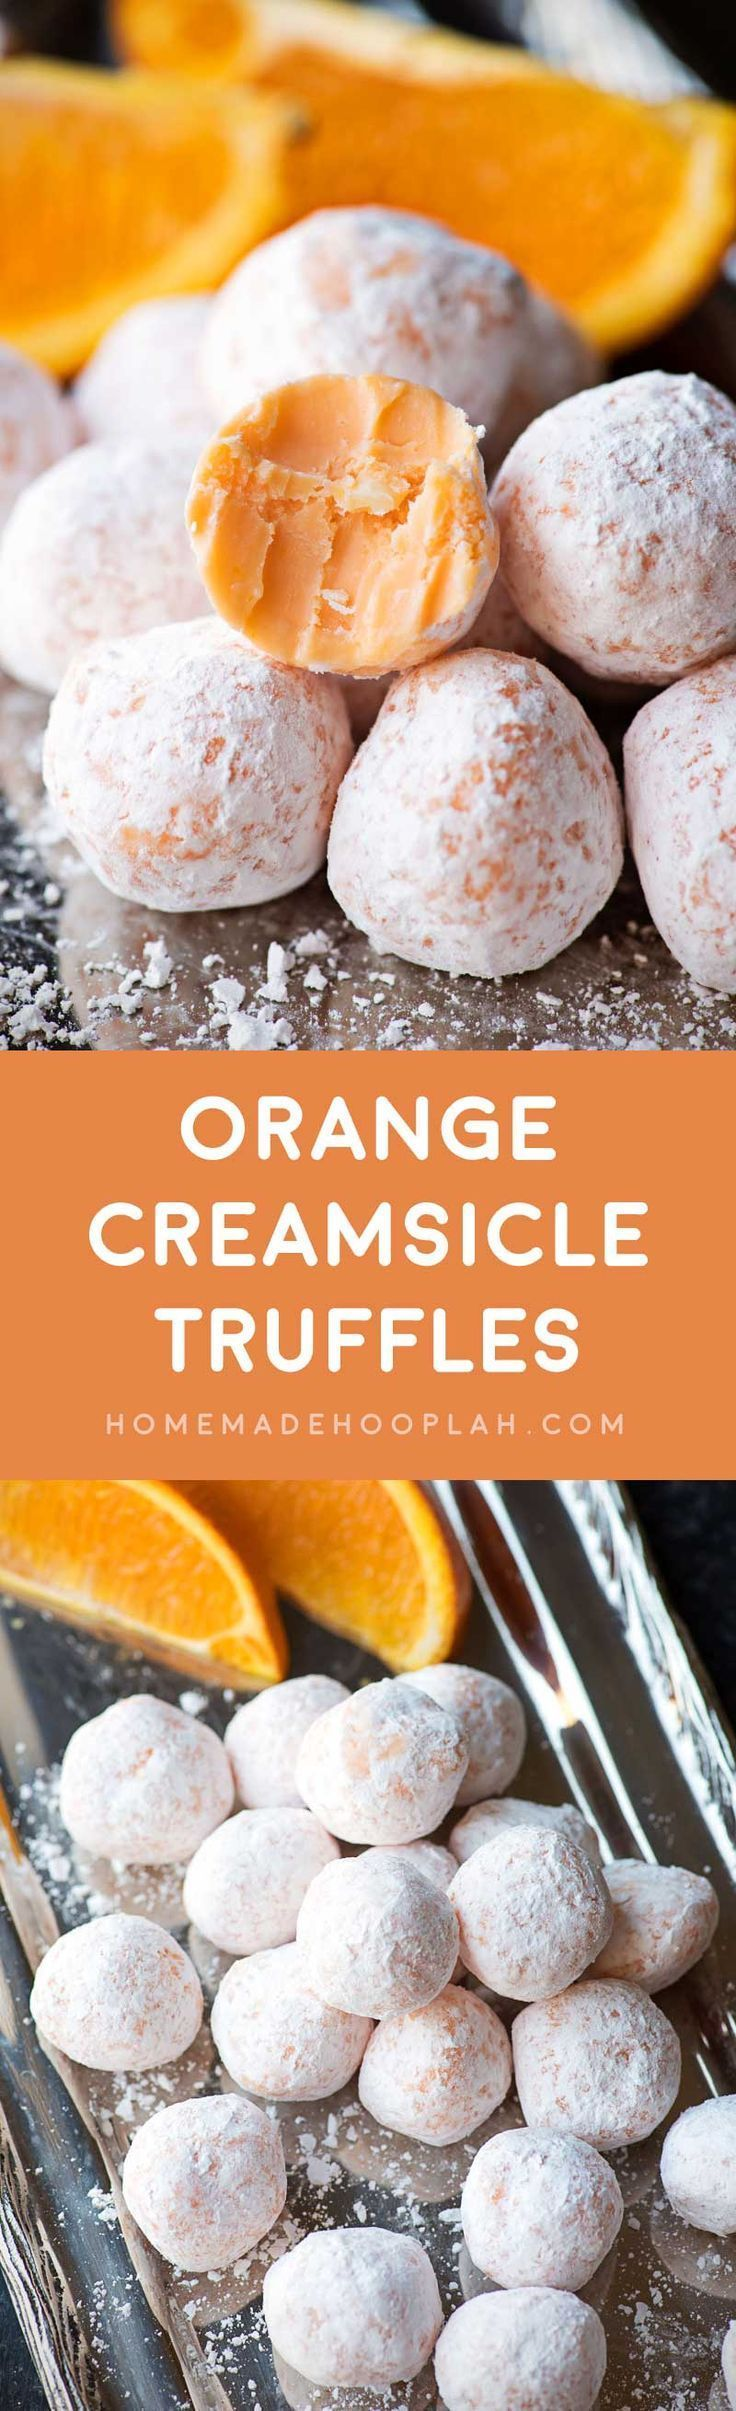 Orange Creamsicle Truffles! Delicious orange truffles that will remind you of all the creamsicle treats you had as a kid. Easy to make and a great snack for parties! | HomemadeHooplah.com